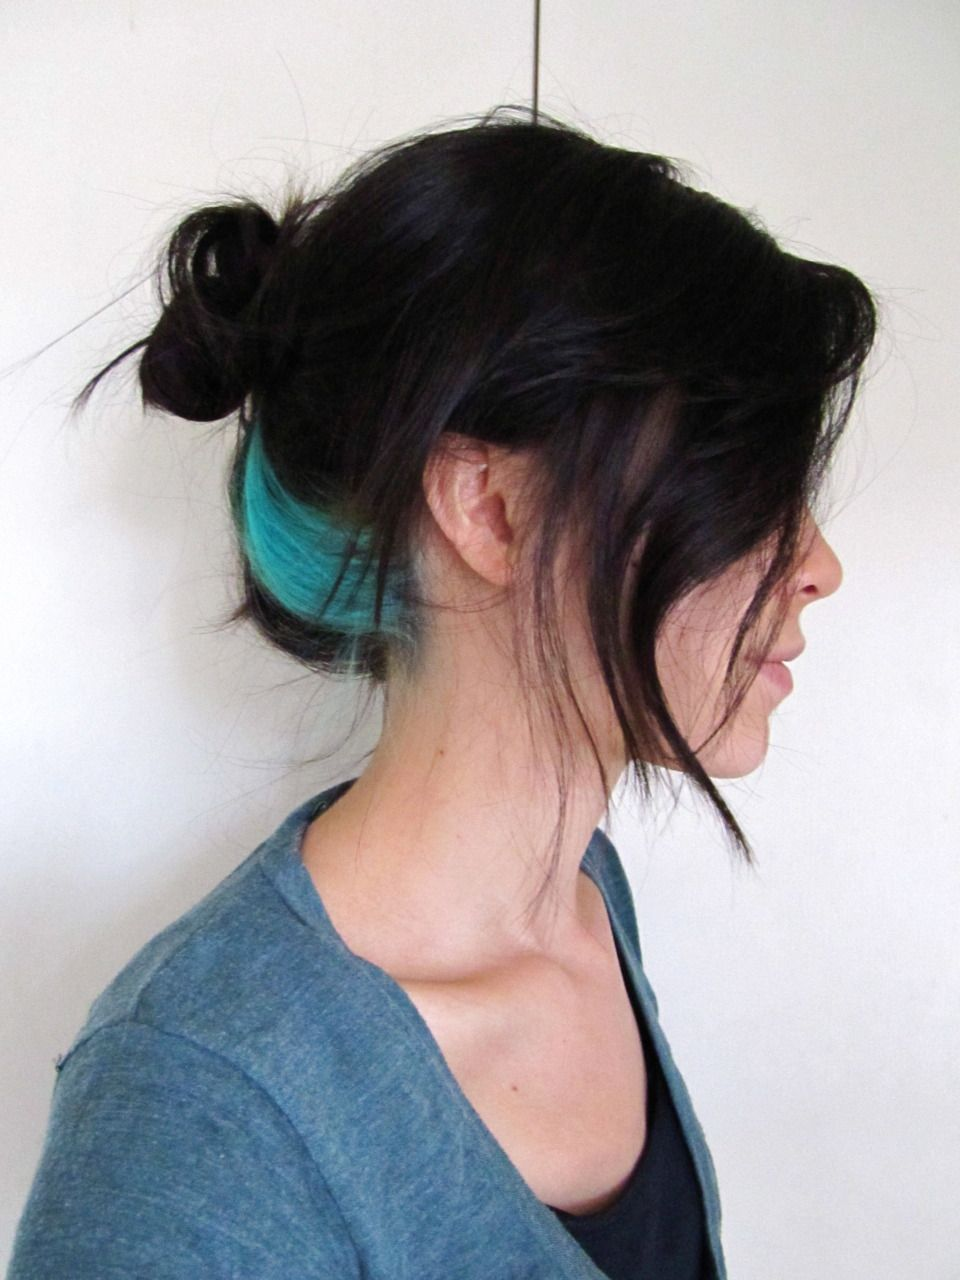 Turquoise Streak Project Tumblr Awesome Color Hair Color Streaks Turquoise Hair Peekaboo Hair